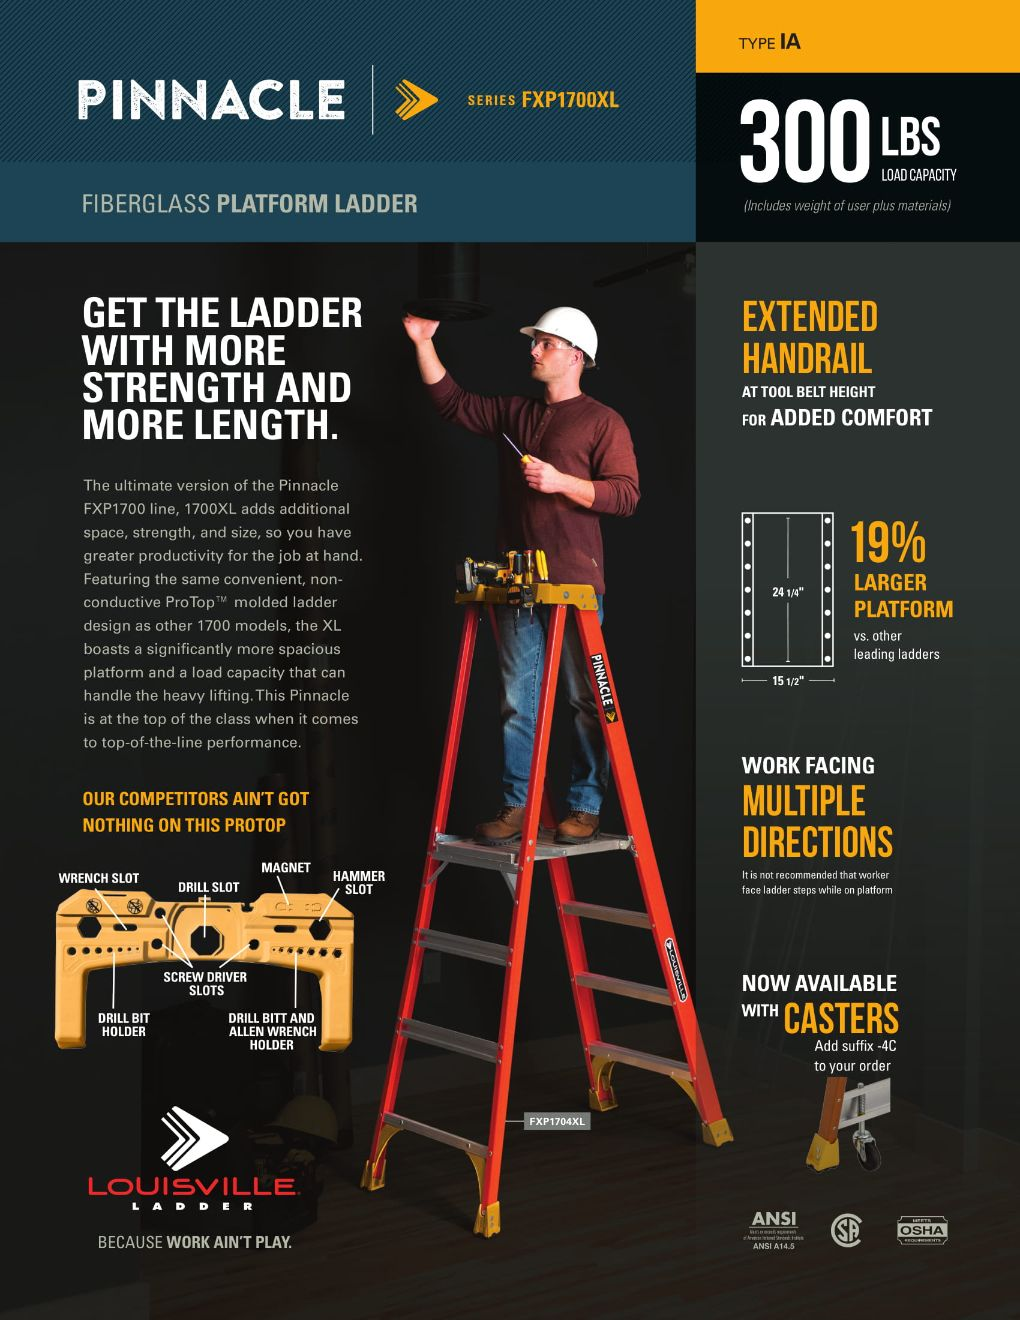 FXP1700XL Pinnacle Ladder Flyer and Spec Sheet Marketing Material Image